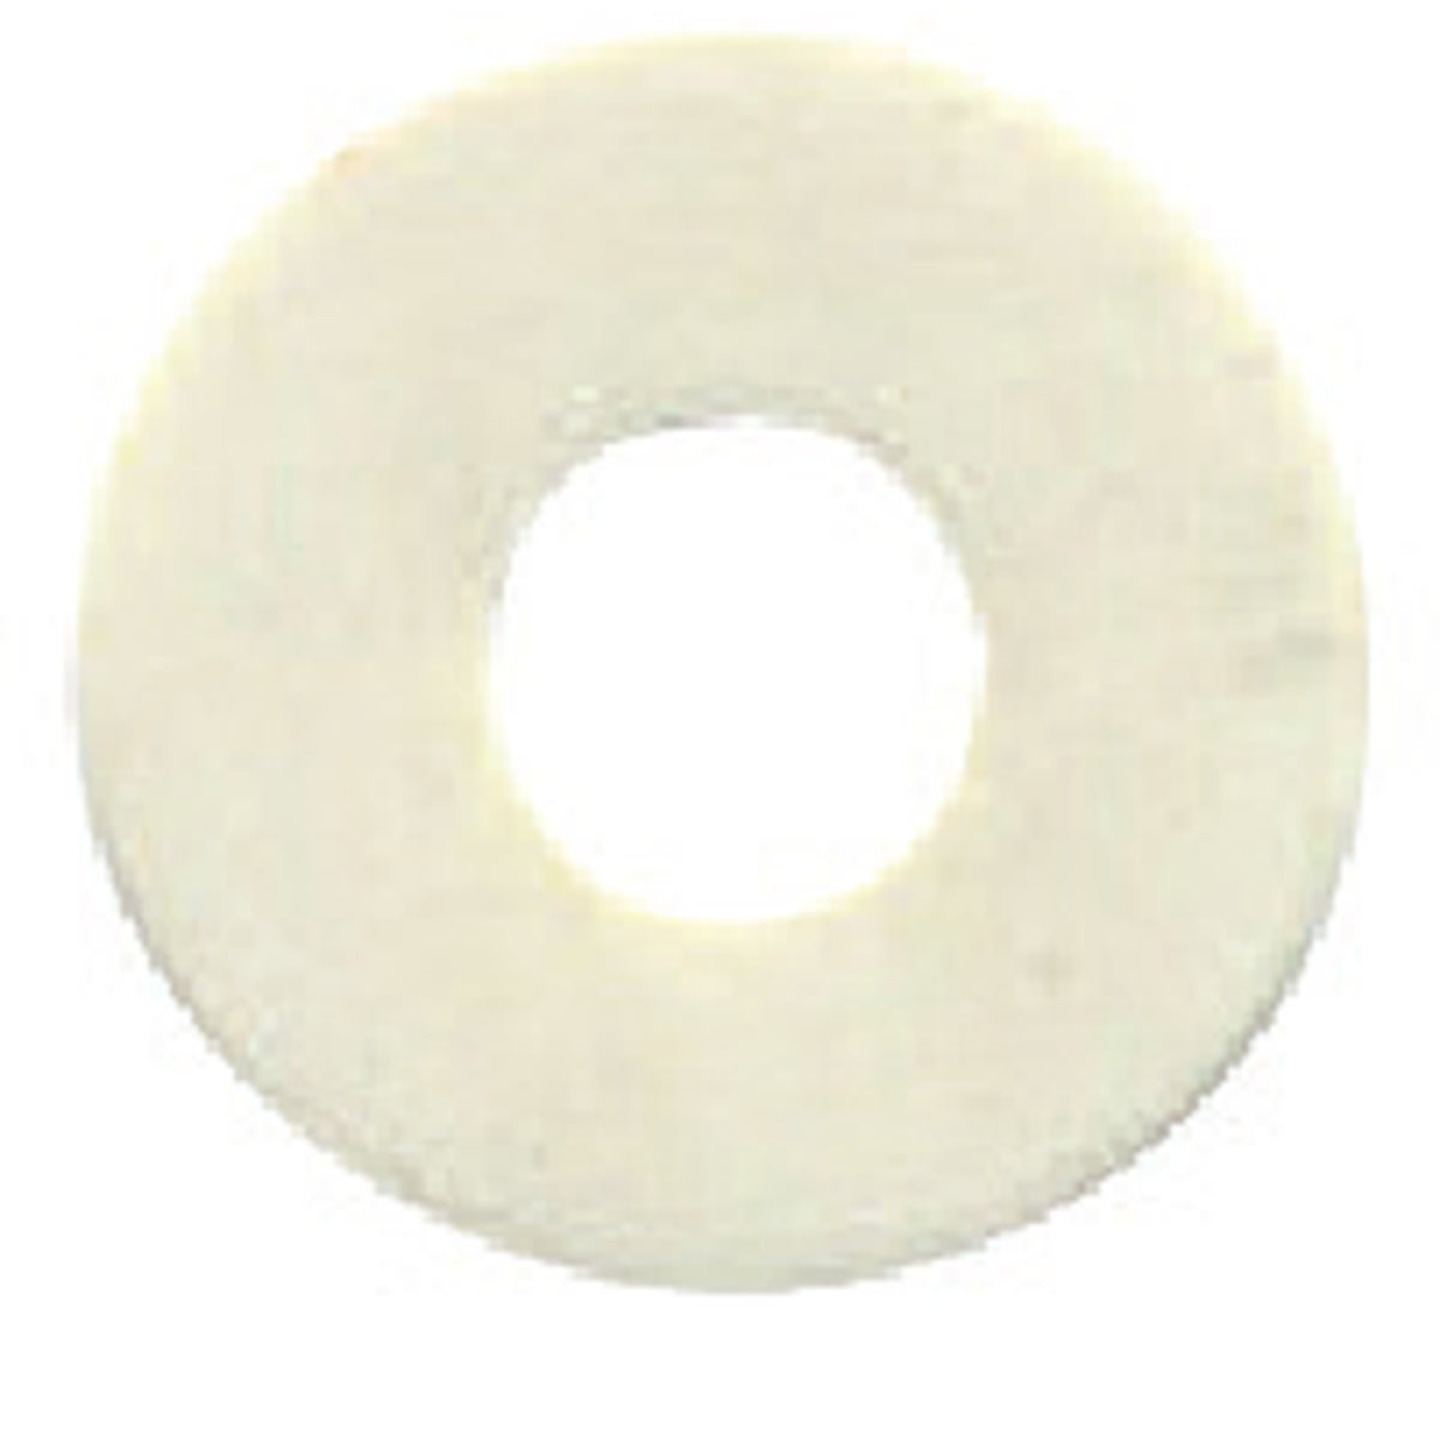 Presto Interlock Pressure Cooker or Canner Gasket Image 1